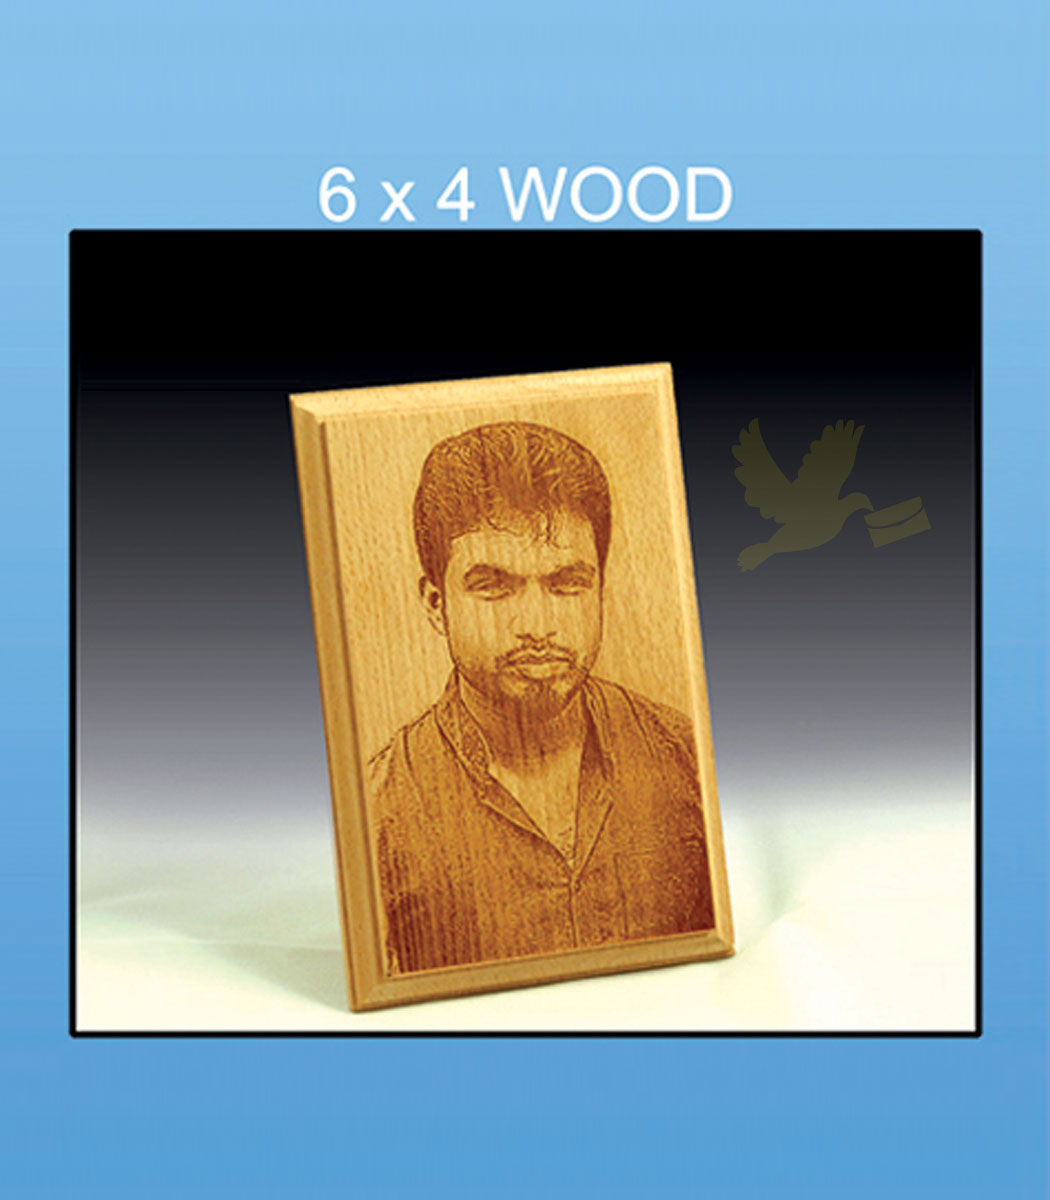 6707fa9c5f8c personalised gifts wooden photos engraving photo images in tirupur  coimbatore